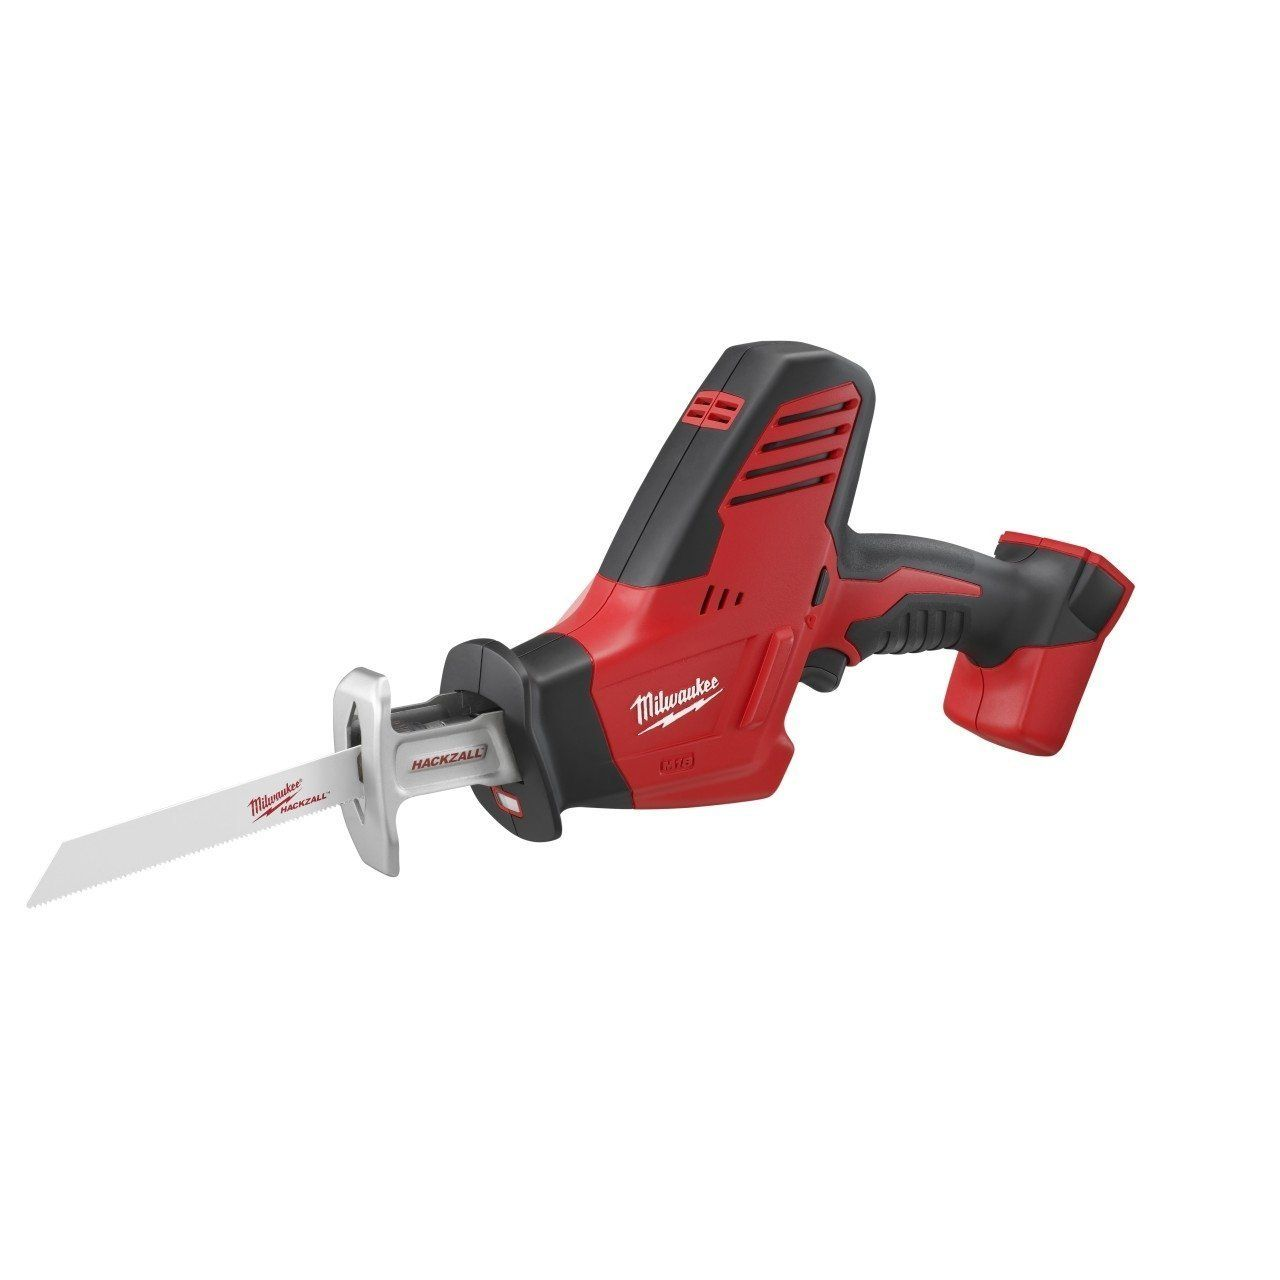 sawzall wiring diagram best home product review and consumer guide reciprocating saw  reciprocating saw